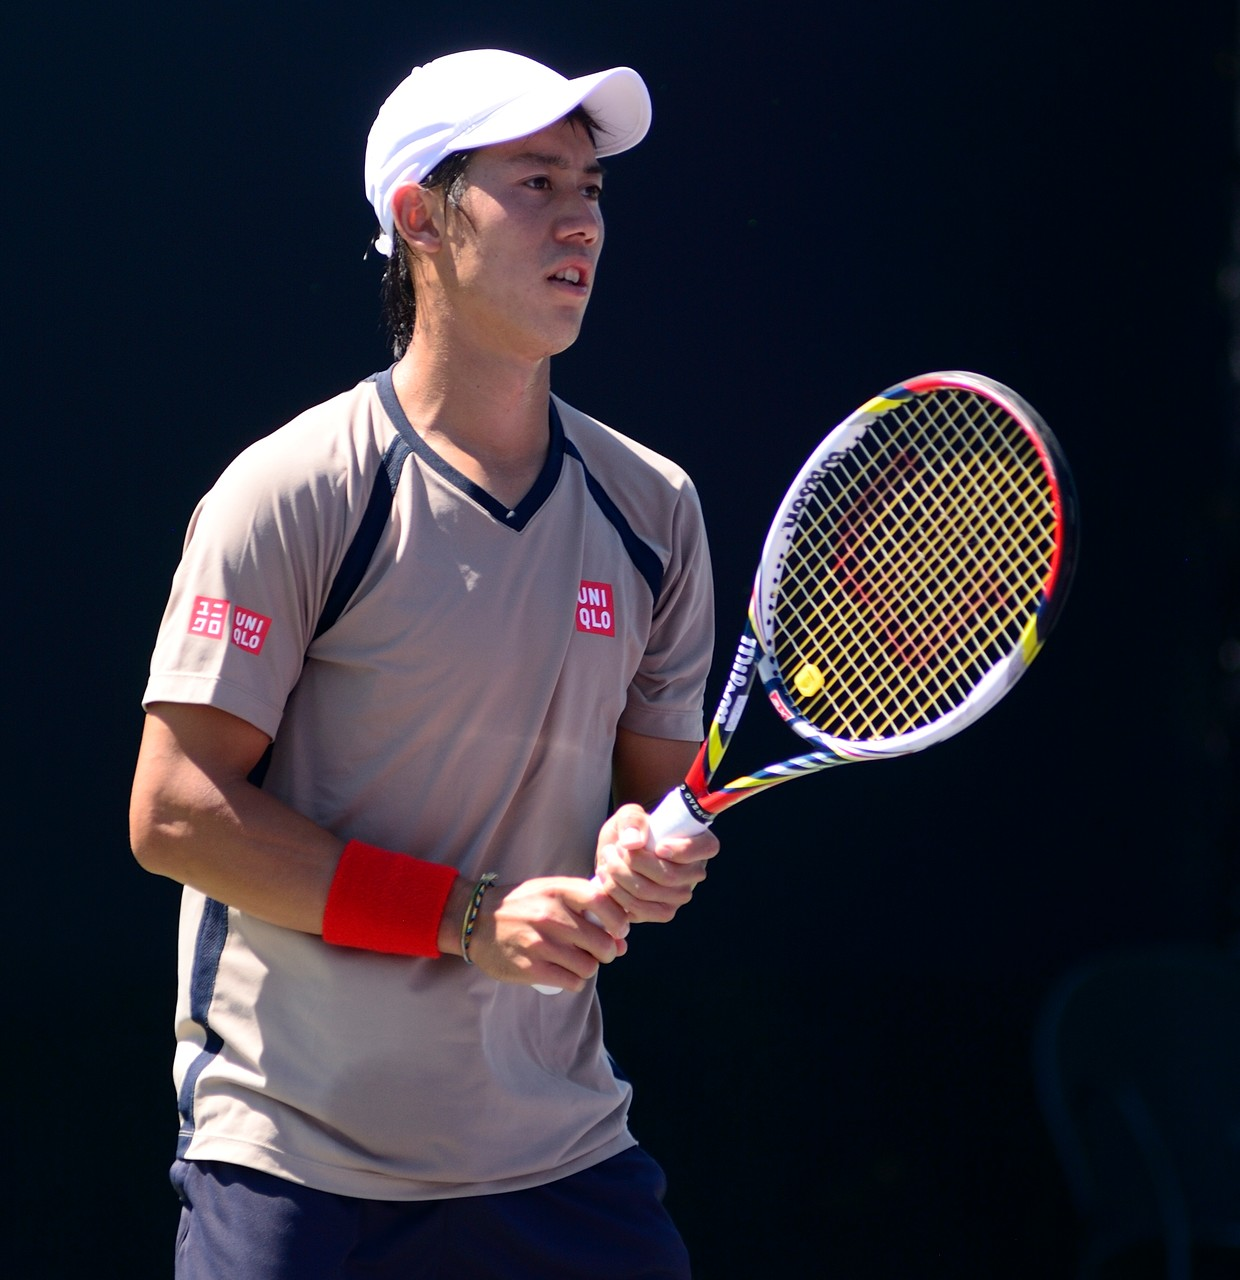 ... mit Kei Nishikori aus Japan zu tun. Der Weltranglisten-Fünfte stand bei den US Open 2014 in seinem ersten Grand-Slam-Finale. (Foto by: Charlie Cowins [CC BY 2.0 (http://creativecommons.org/licenses/by/2.0)], via Wikimedia Commons)